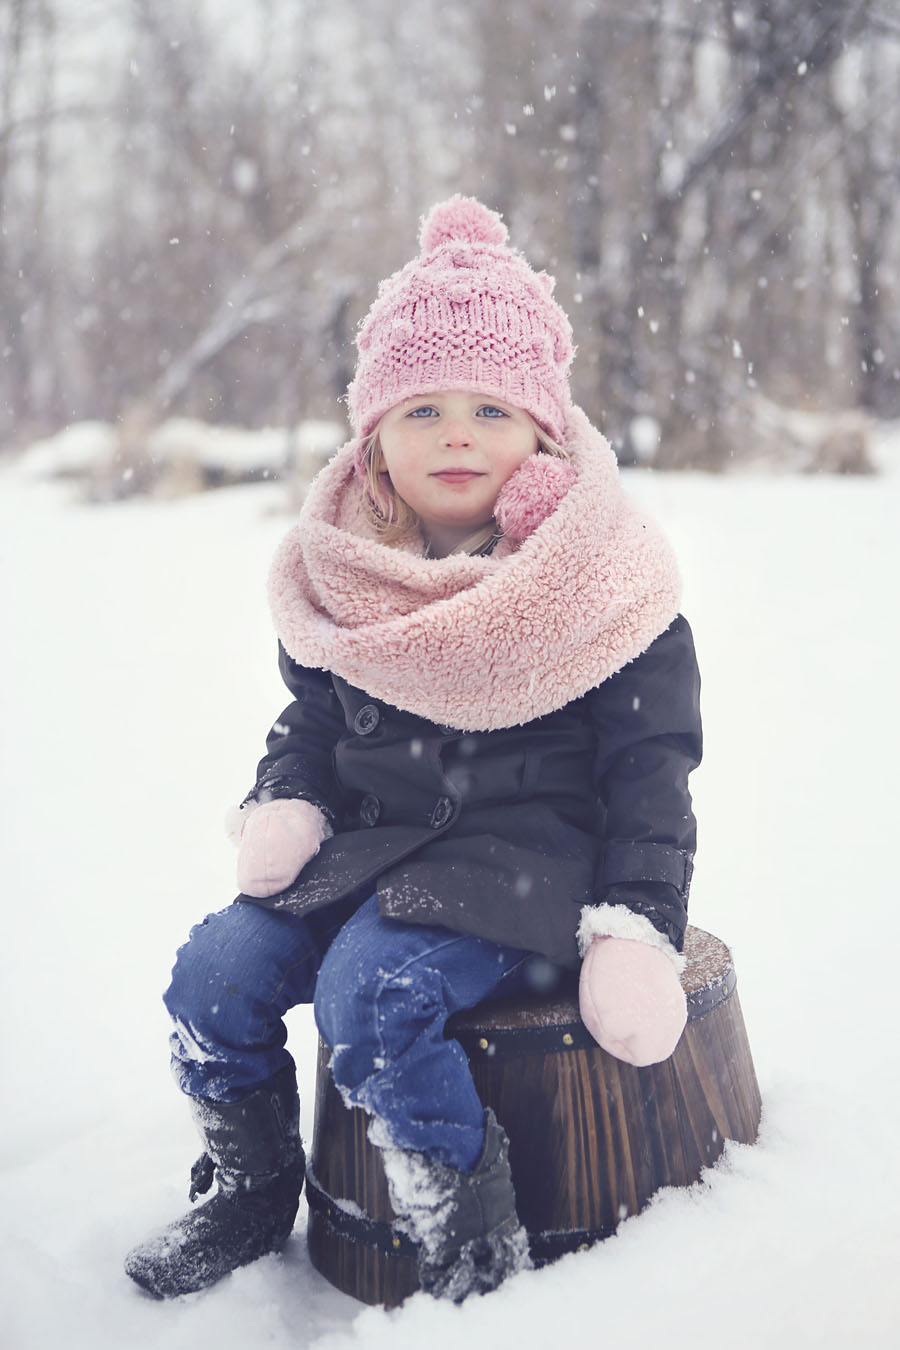 Child on barrel in snow